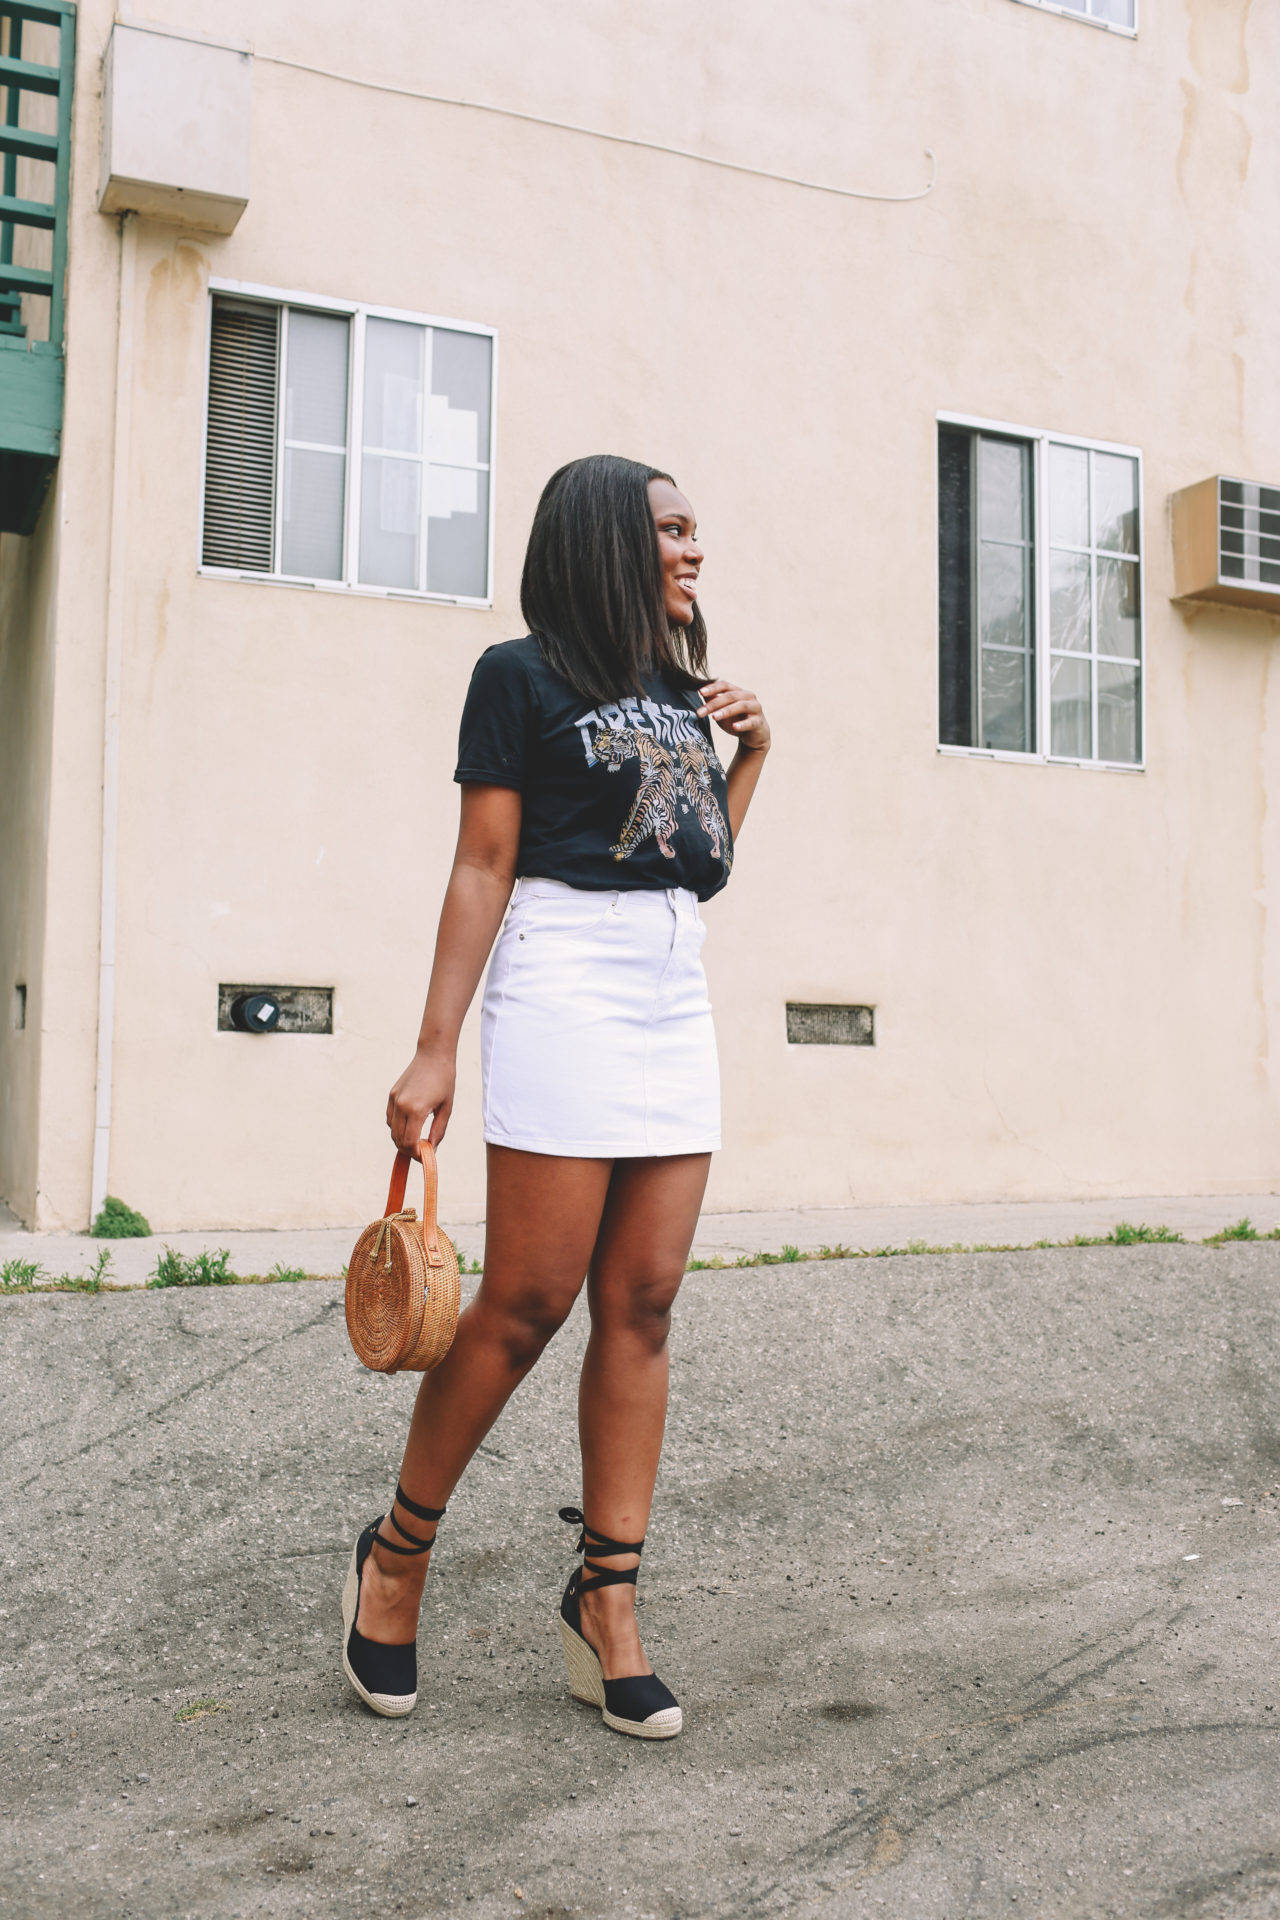 Graphic Tee Outfit Idea - Le Fab Chic